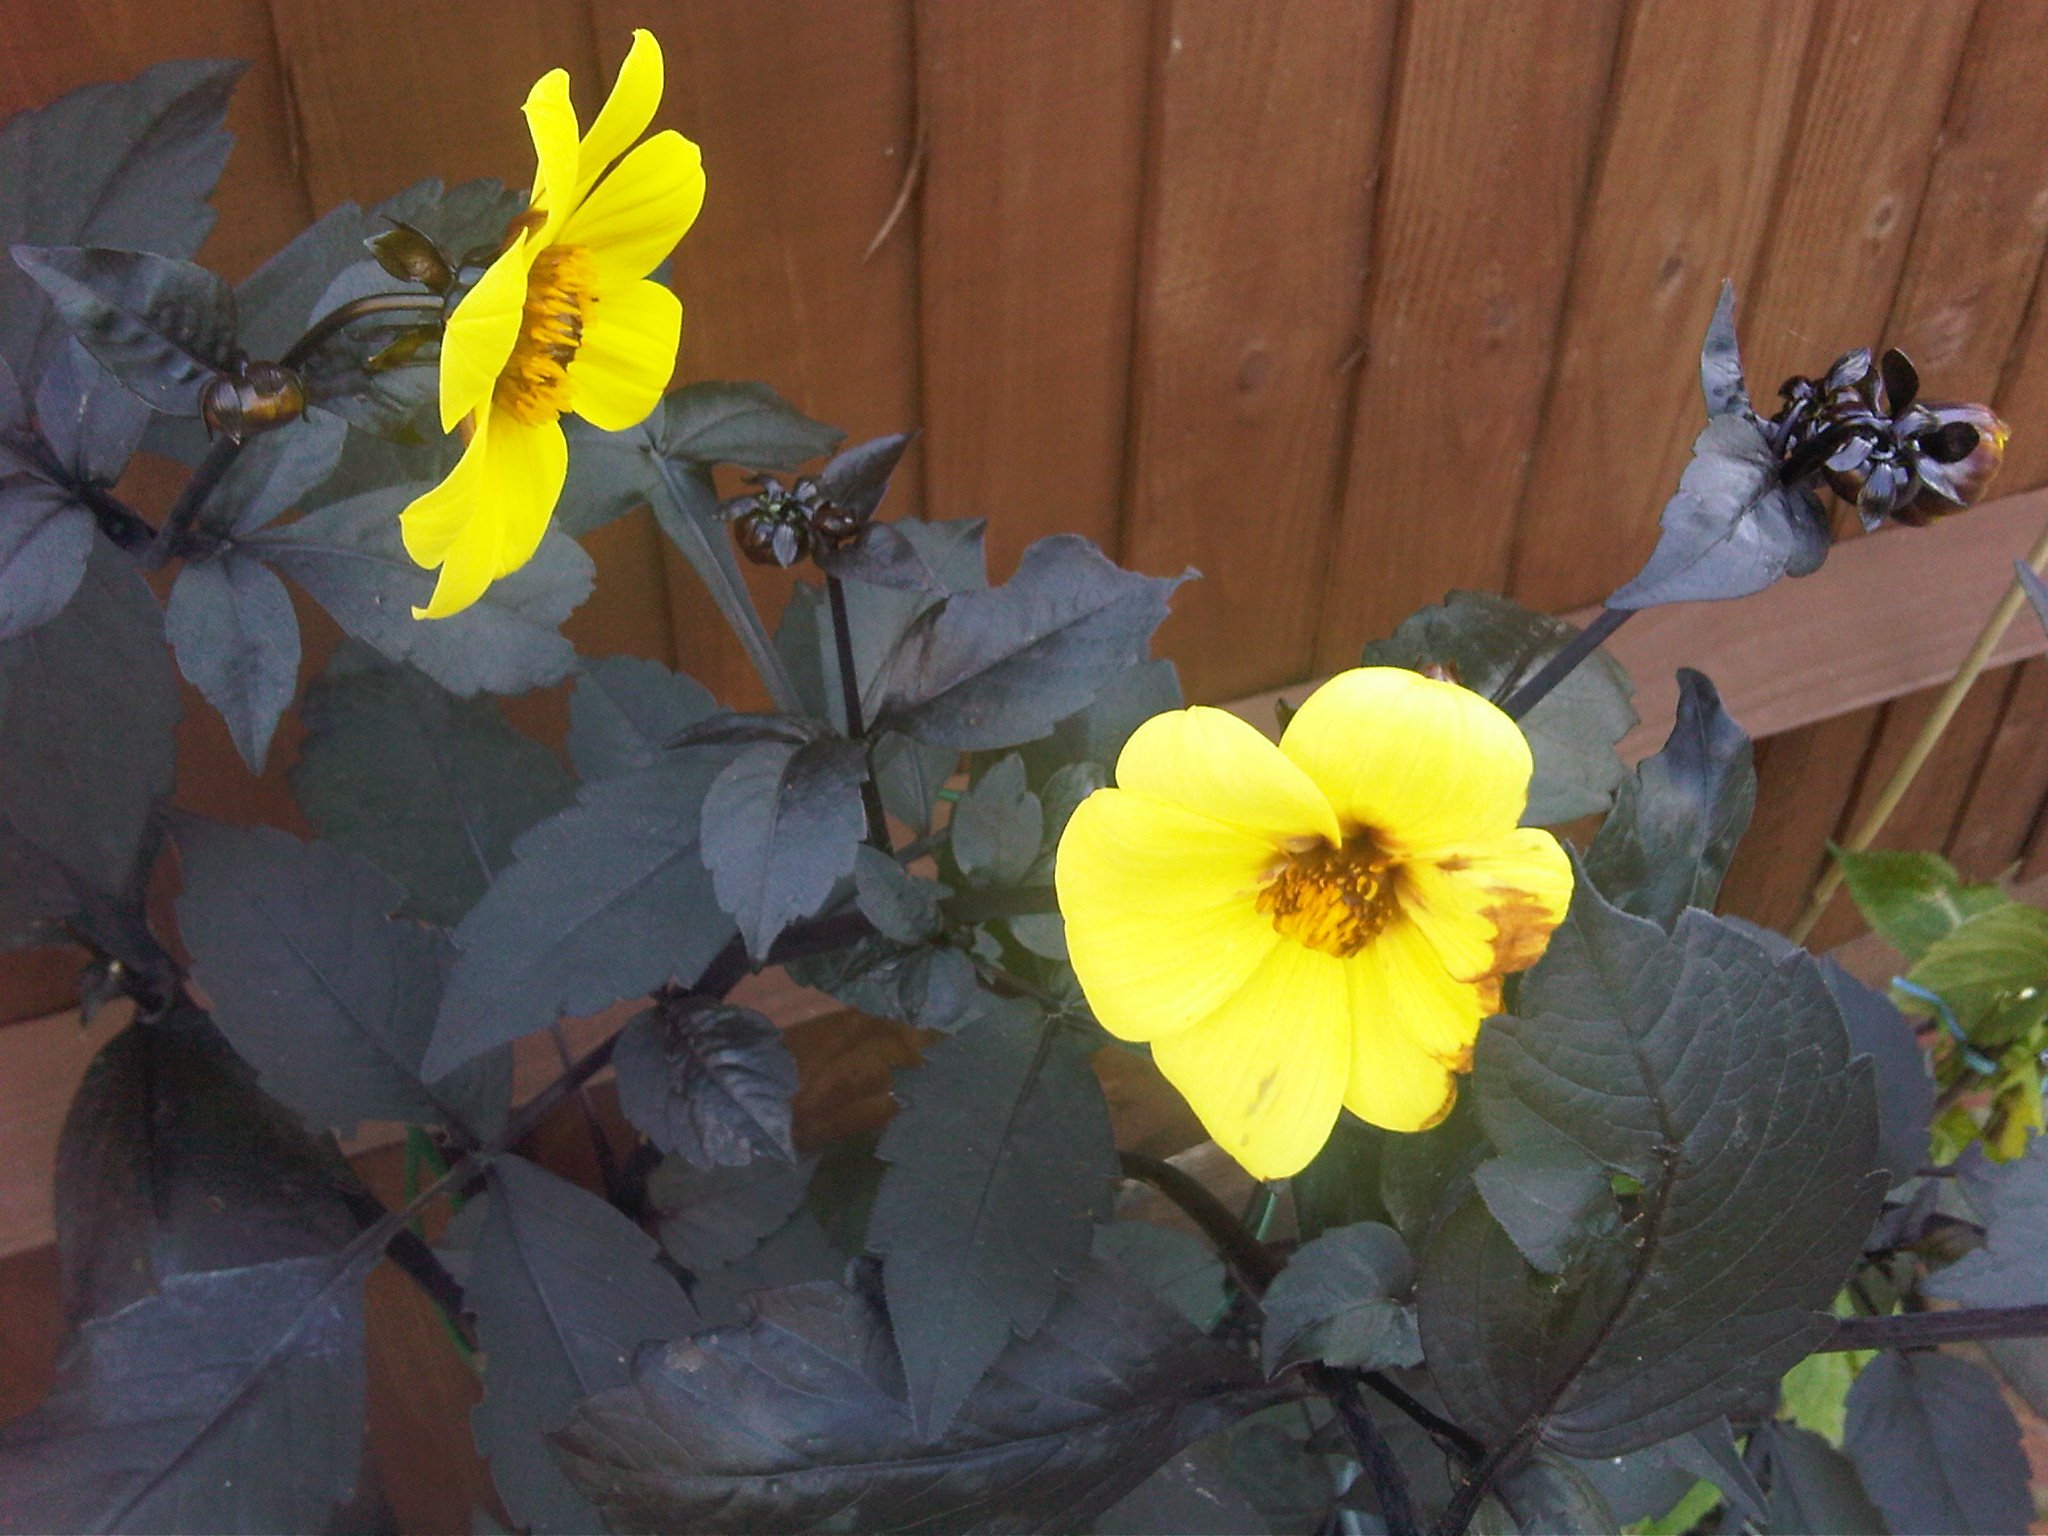 What is this yellow flower with purple foliage izmirmasajfo